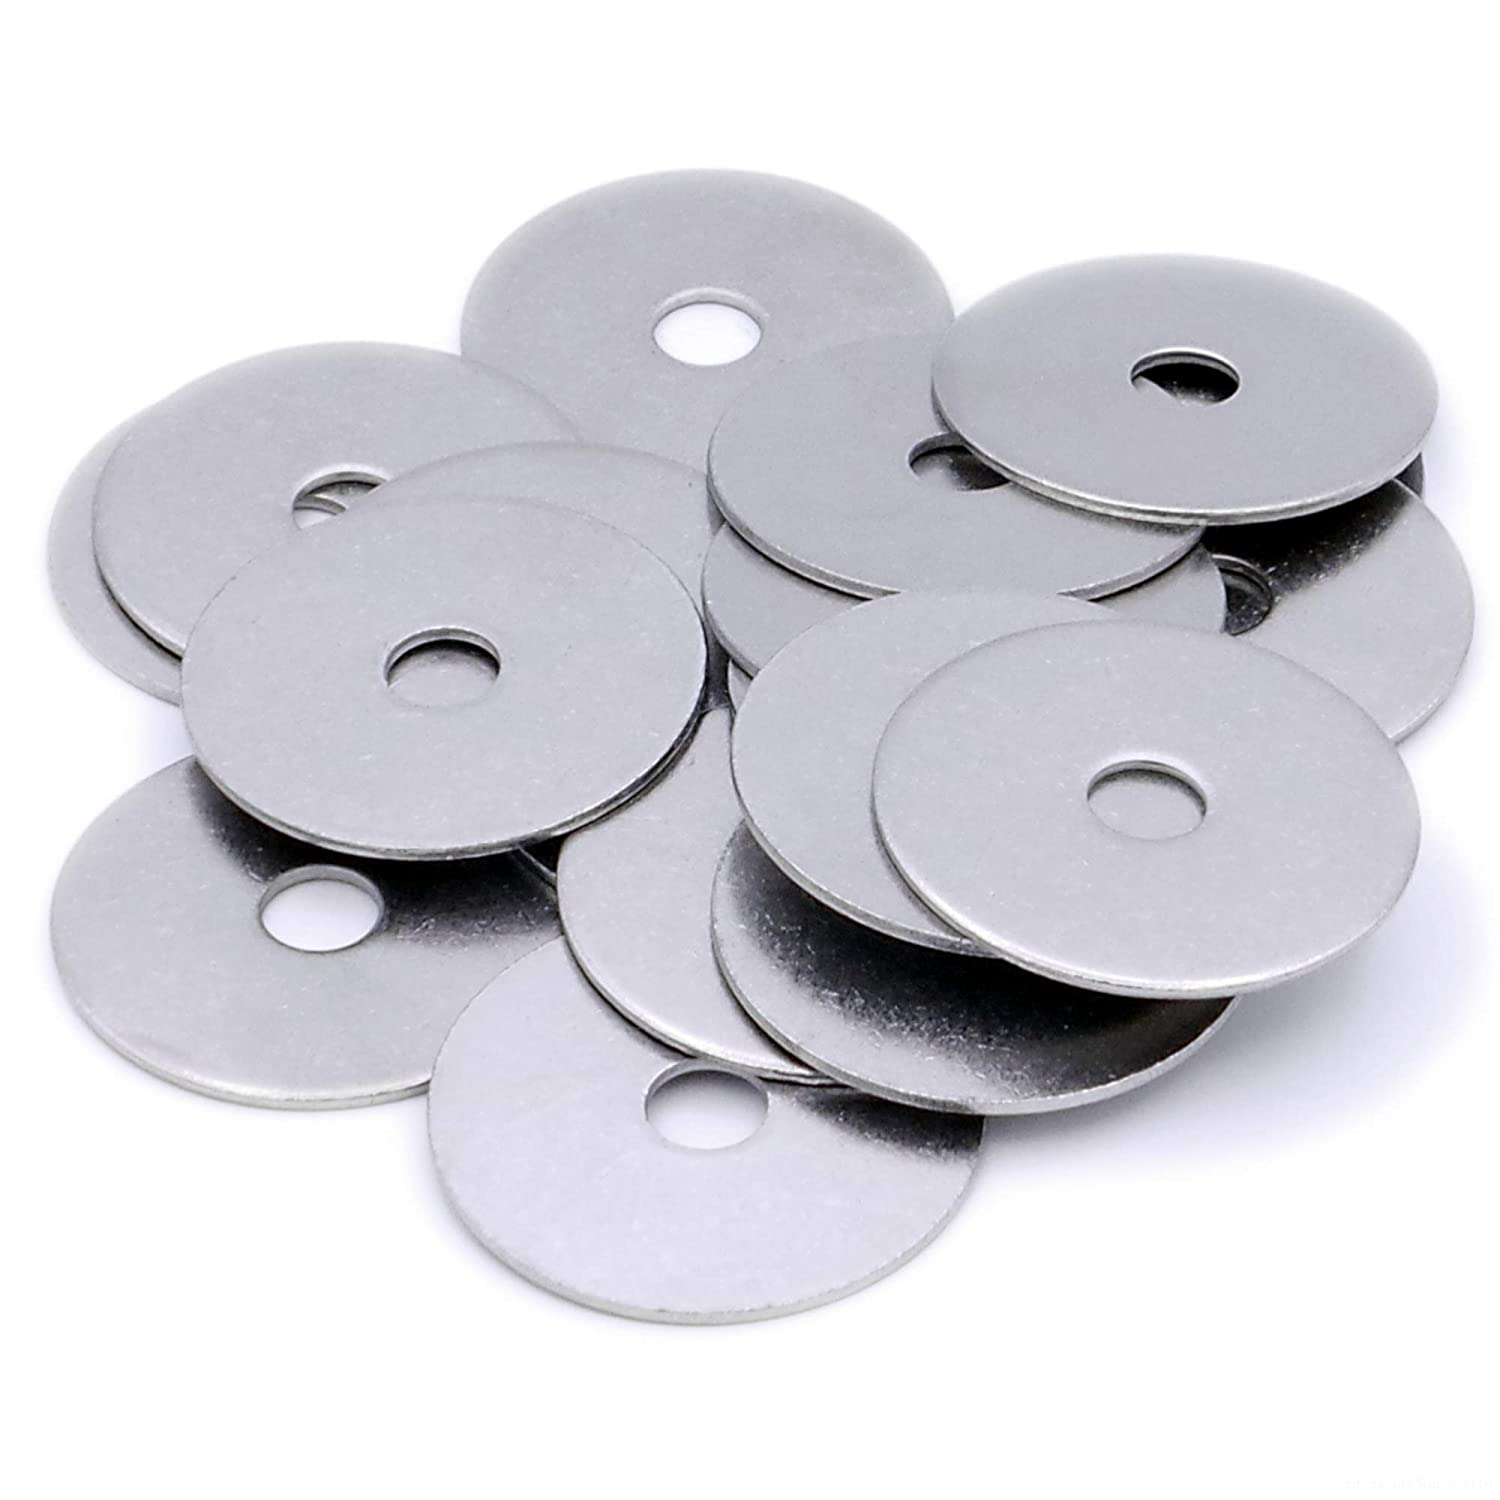 - Stainless Steel 6mm x 45mm Large OD M6 Pack of 10 Flat Repair Washer A2